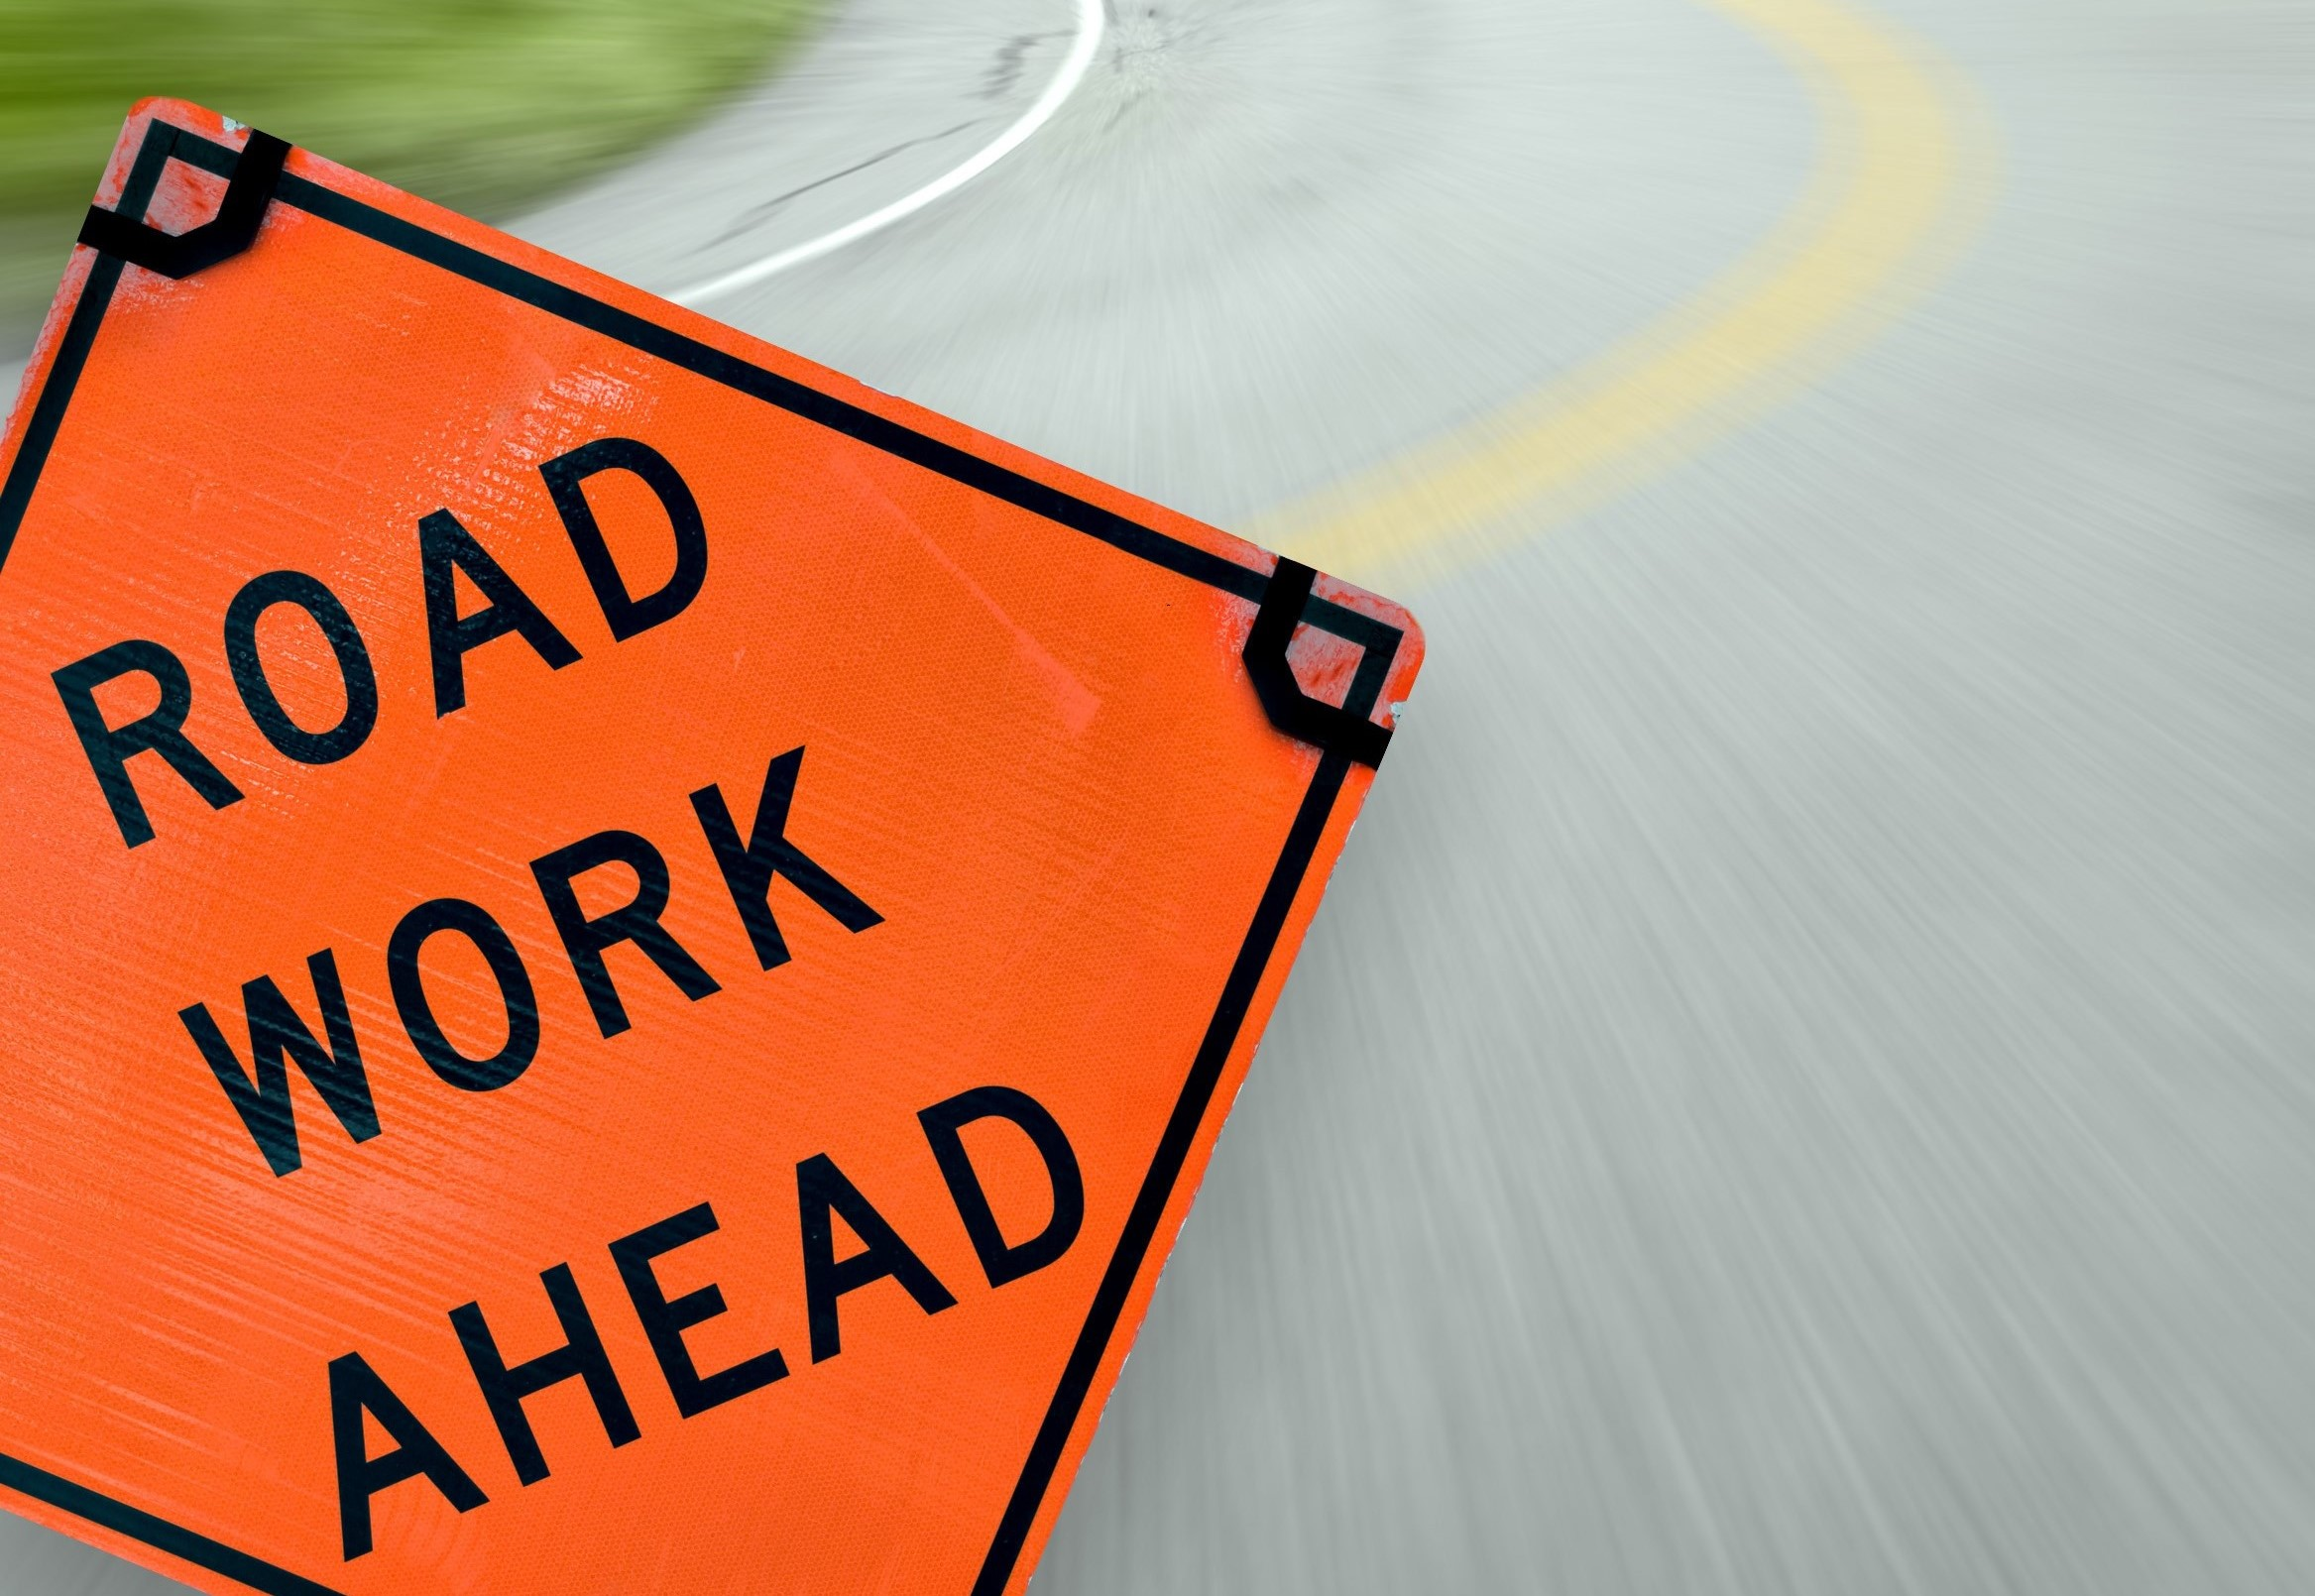 LOOKING FOR A CAREER IN TRAFFIC CONTROL?COME JOIN OUR TEAM - This is where you want to be.